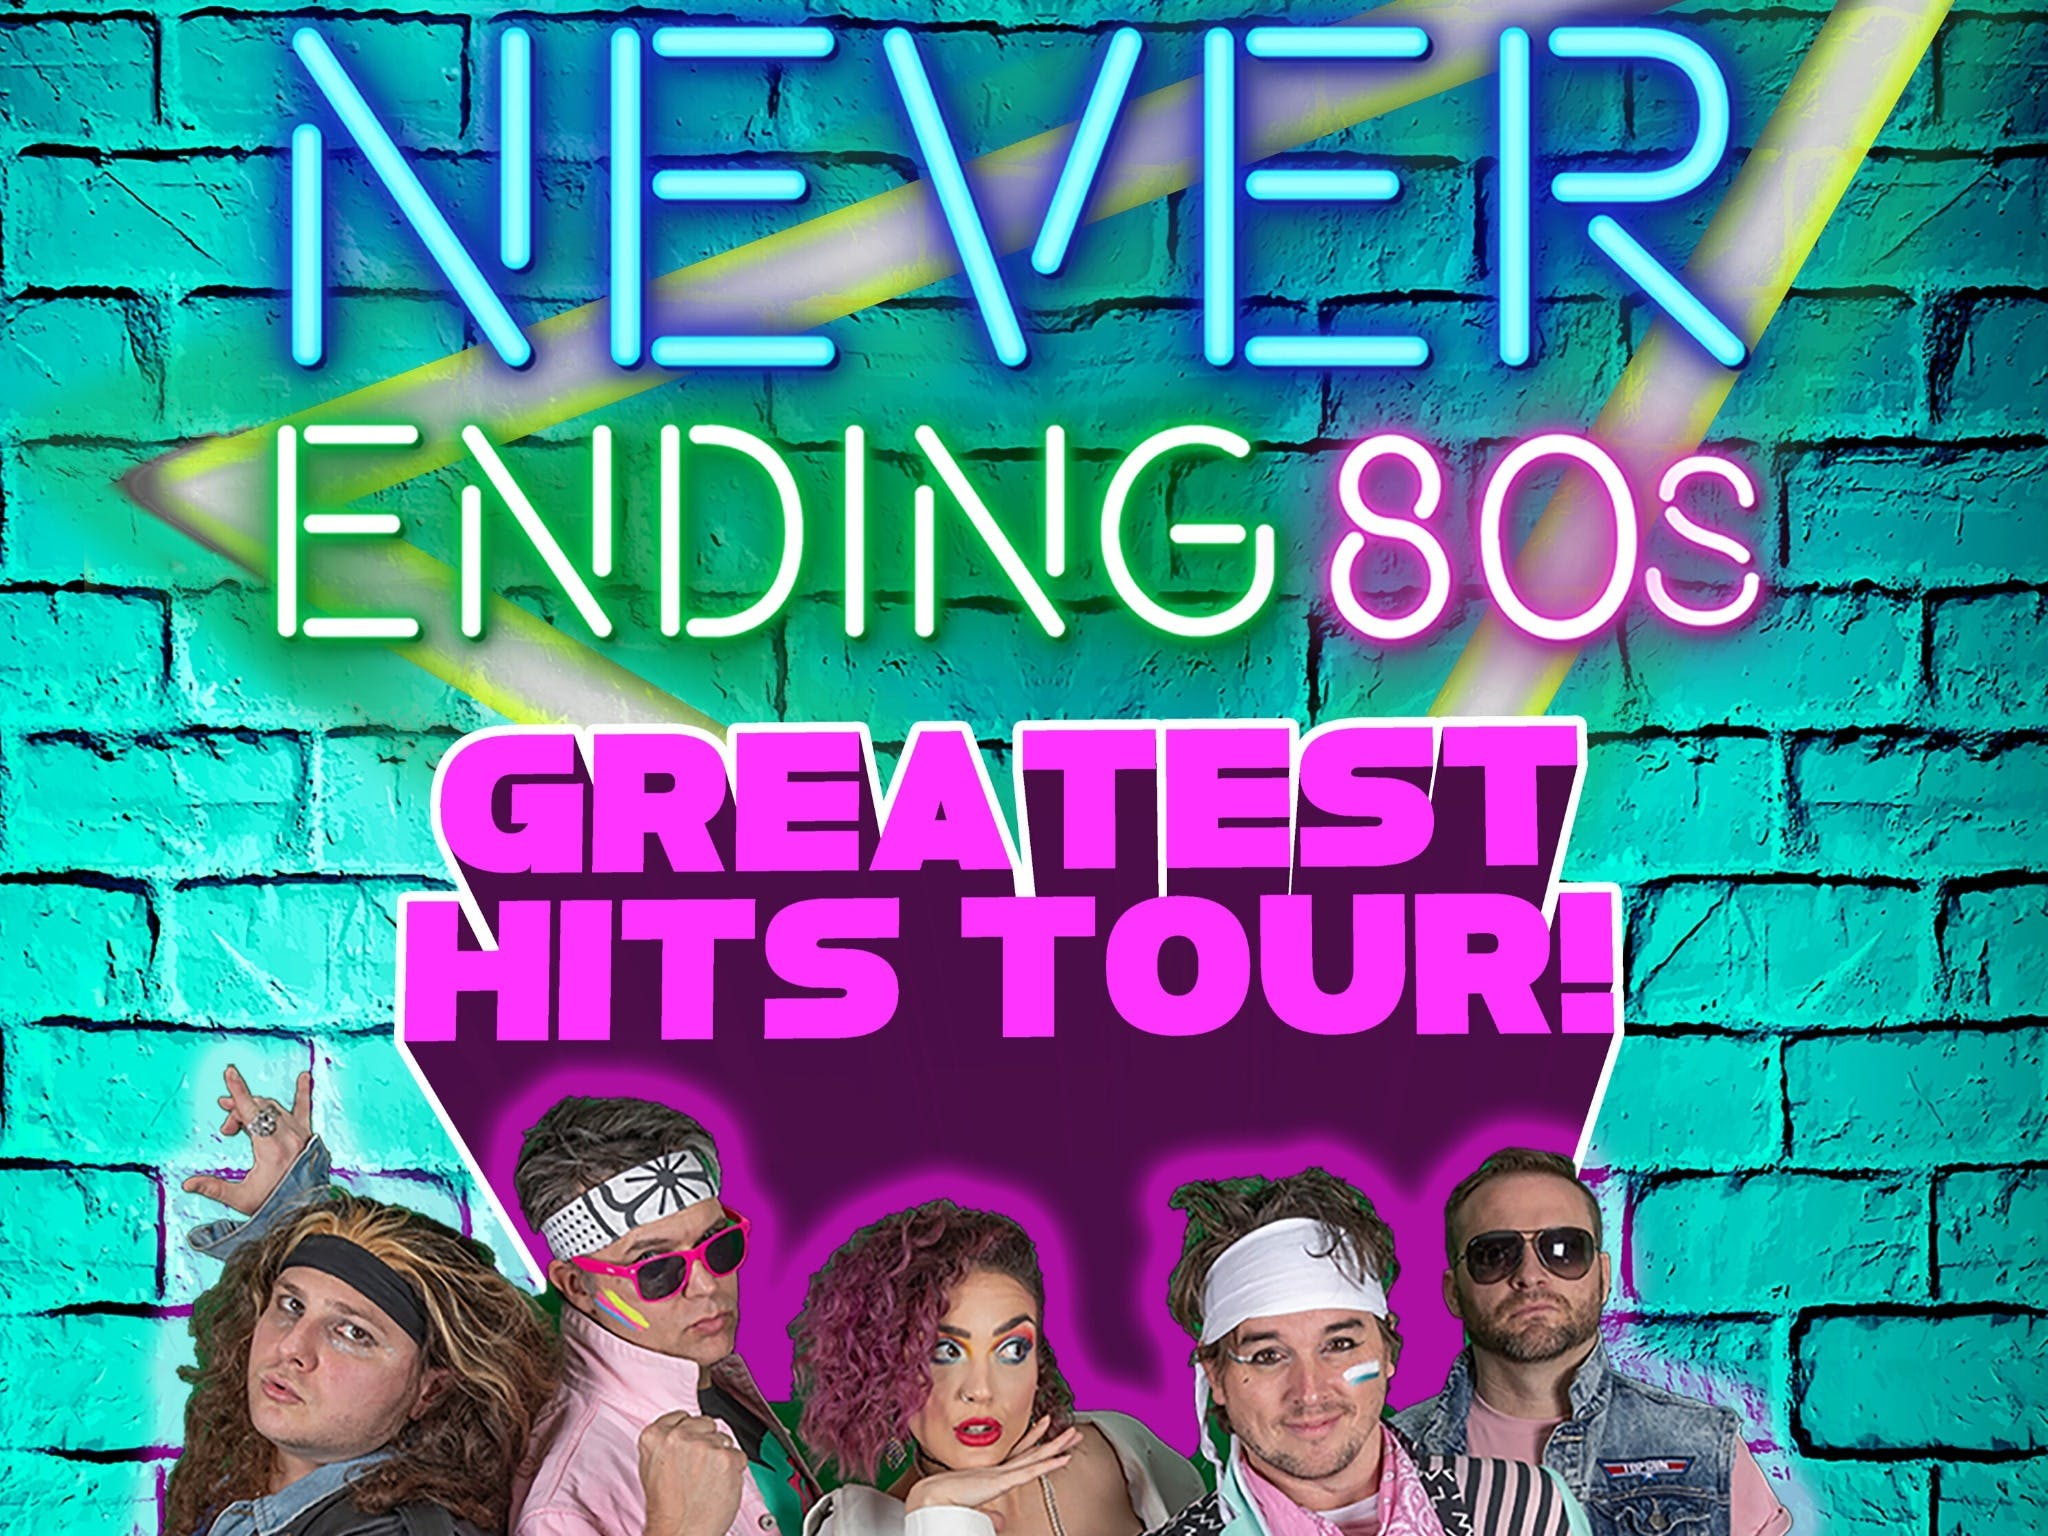 Never Ending 80s - The Greatest Hits Tour - ACT Tourism